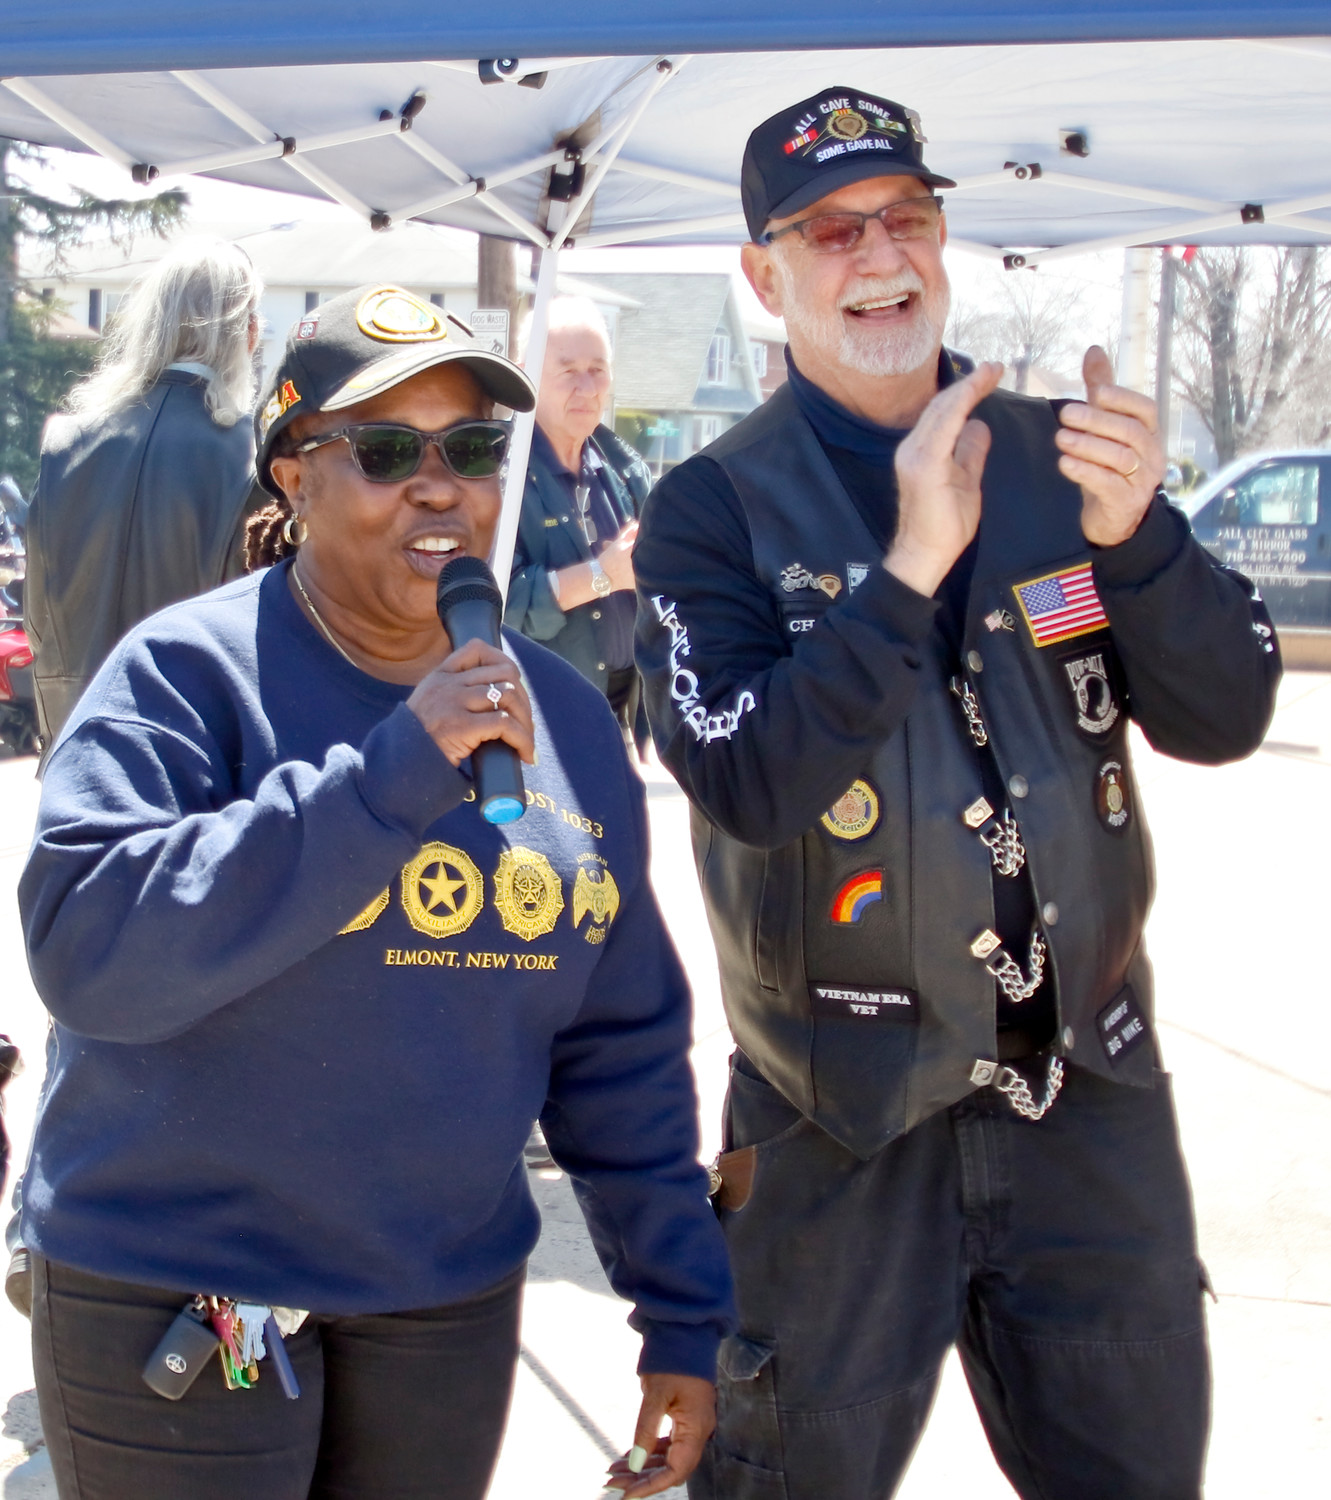 Elmont Legion Post 1033 Commander Lecia Whyte-Rodriques and First Vice-Commander Eric Spinner helped kick off the Blessing of the Bikes. Post 1033 boasts the largest membership in Nassau County.